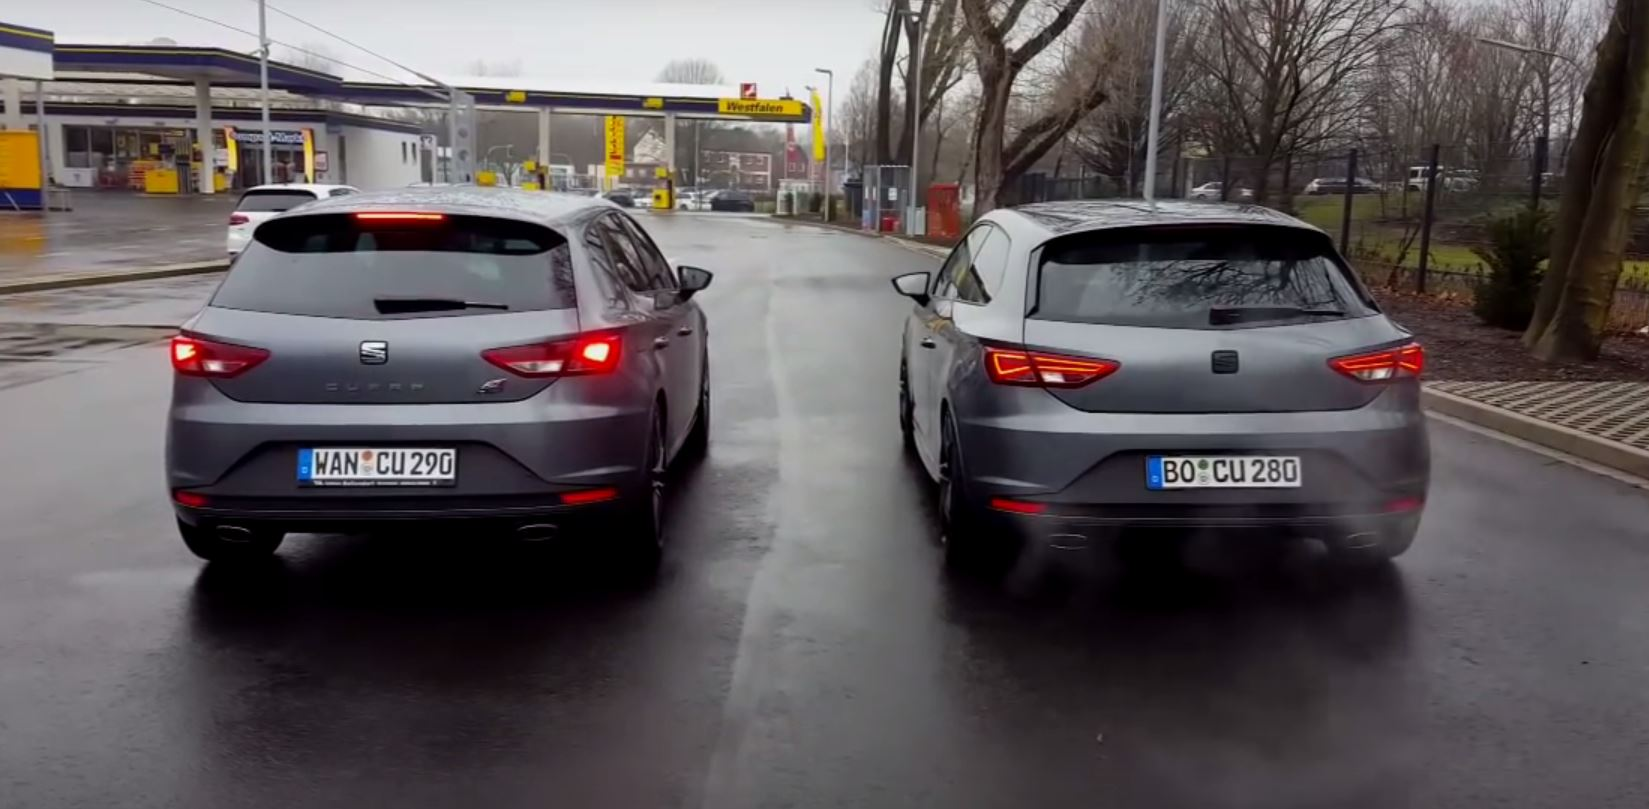 seat leon cupra 290 vs 280 exhaust sound comparison. Black Bedroom Furniture Sets. Home Design Ideas